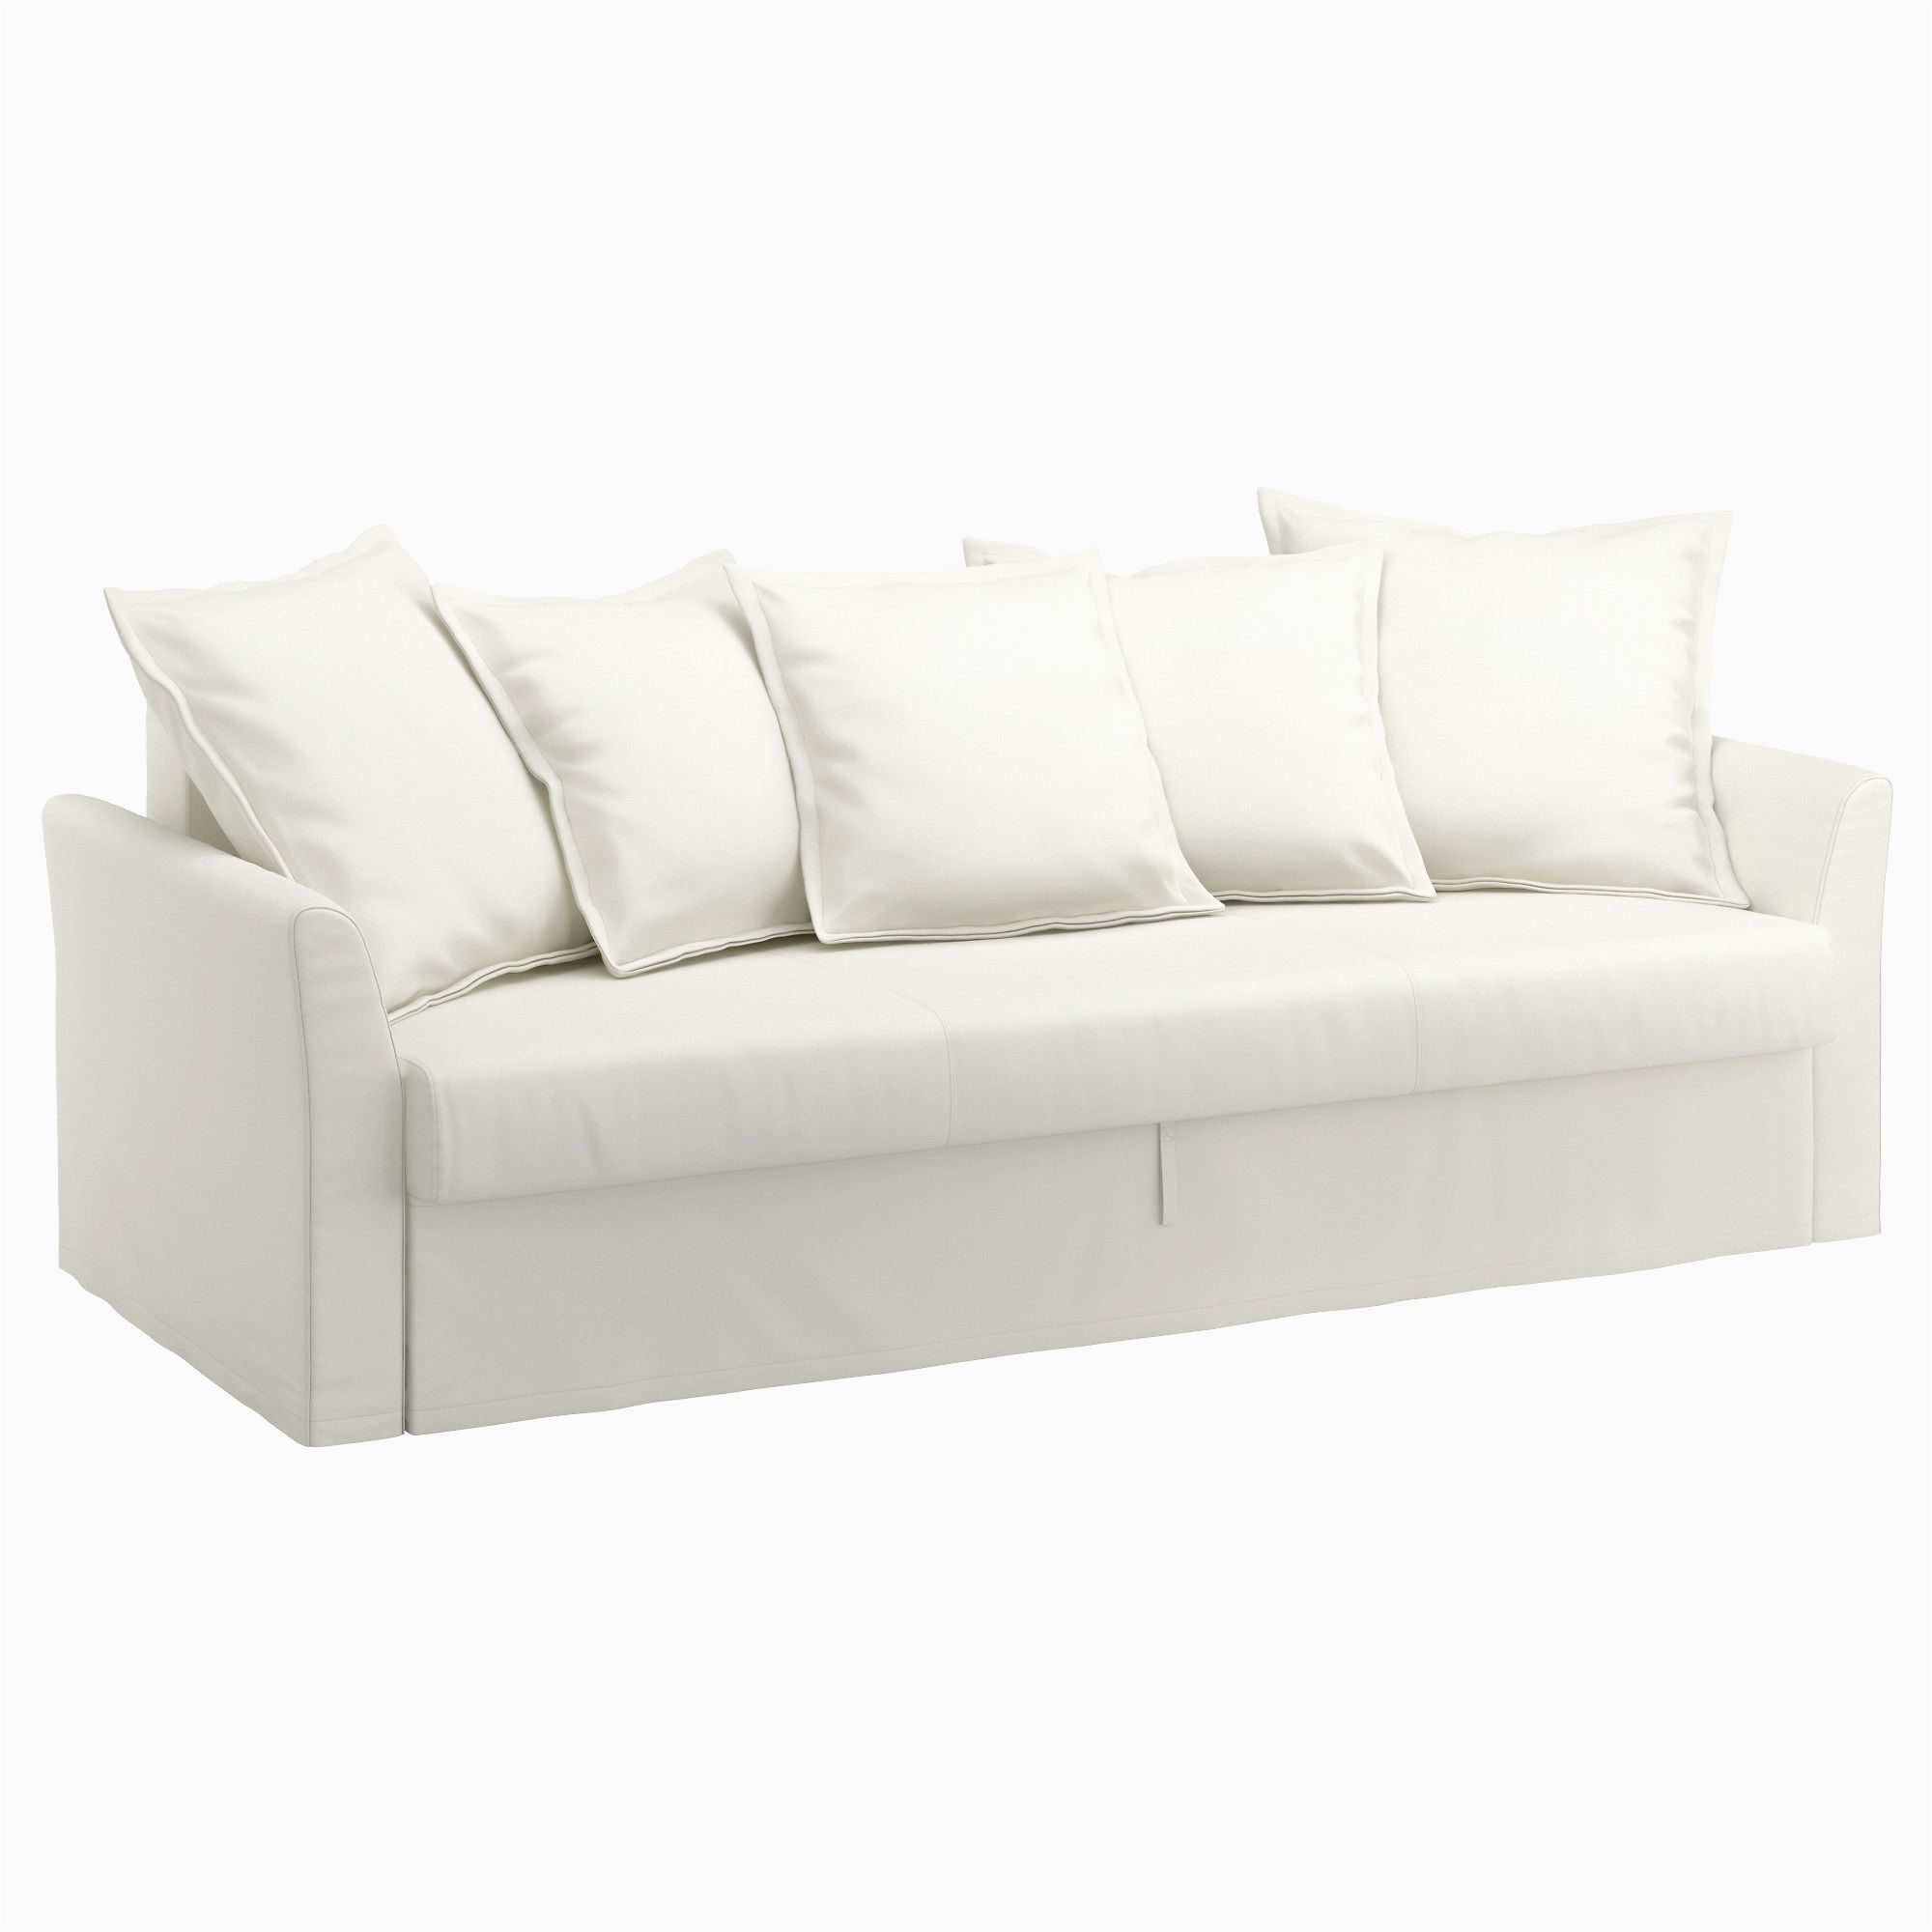 lovely lane leather sofa photograph-Finest Lane Leather sofa Gallery